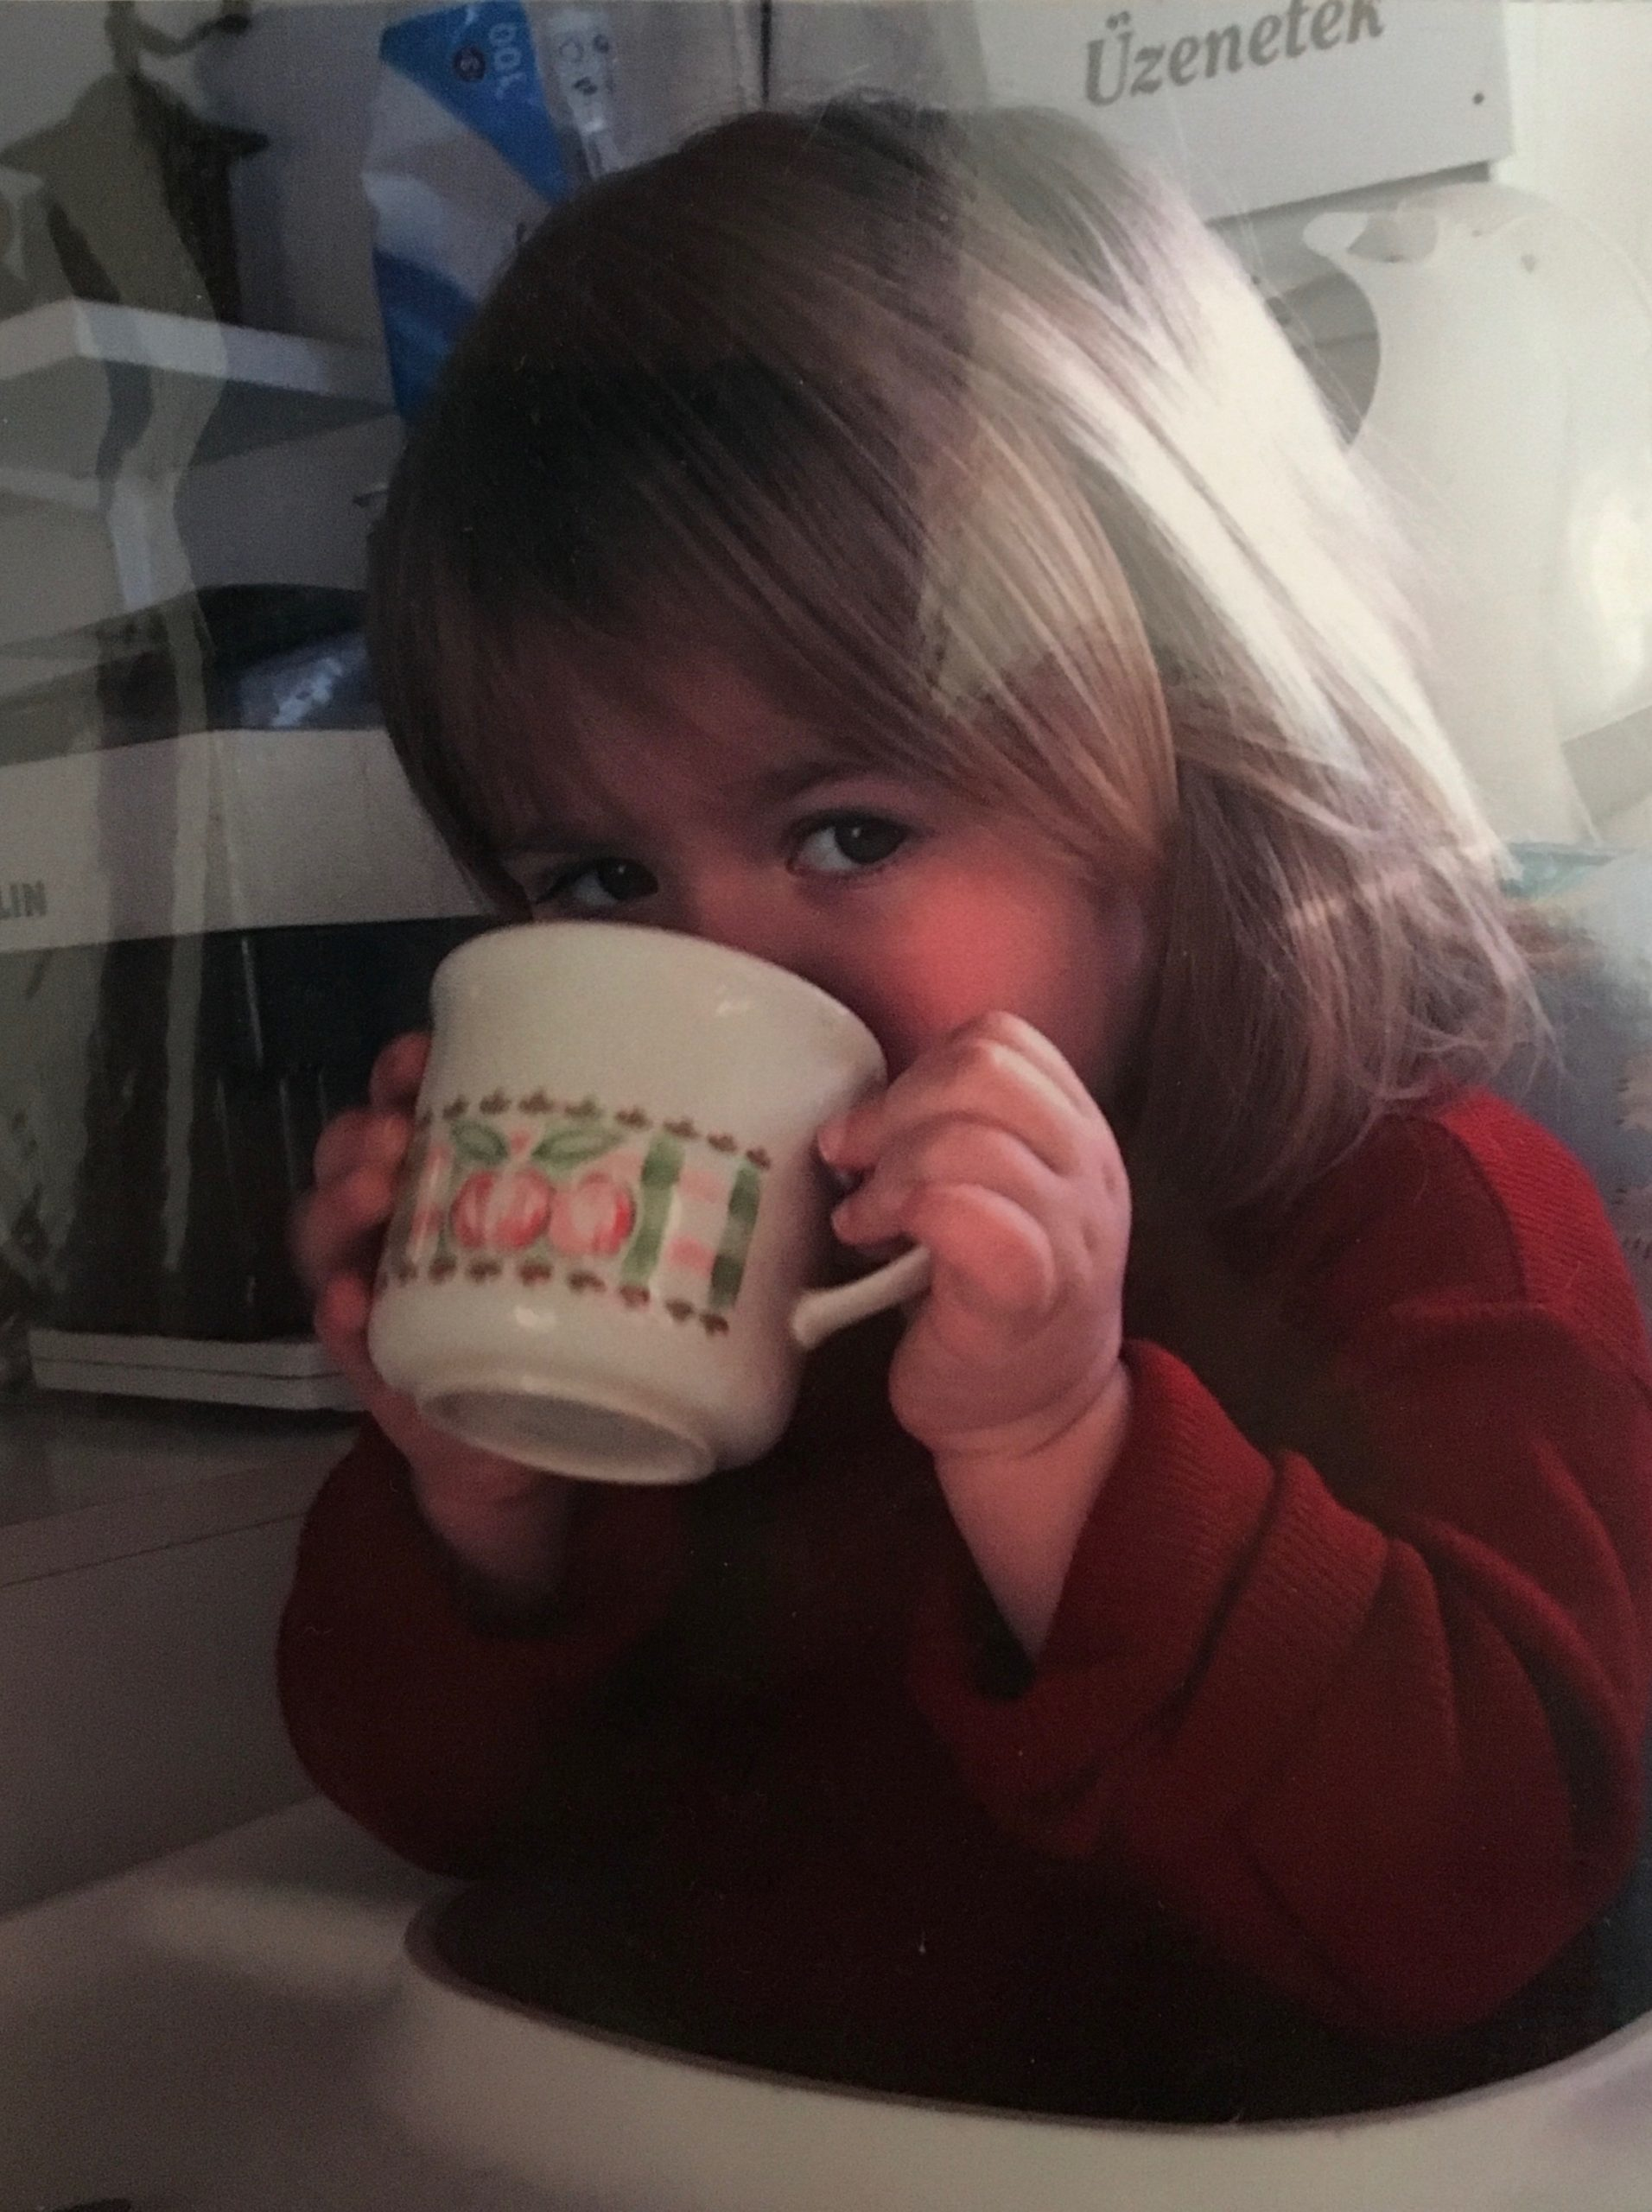 Toddler drinking out of coffee mug